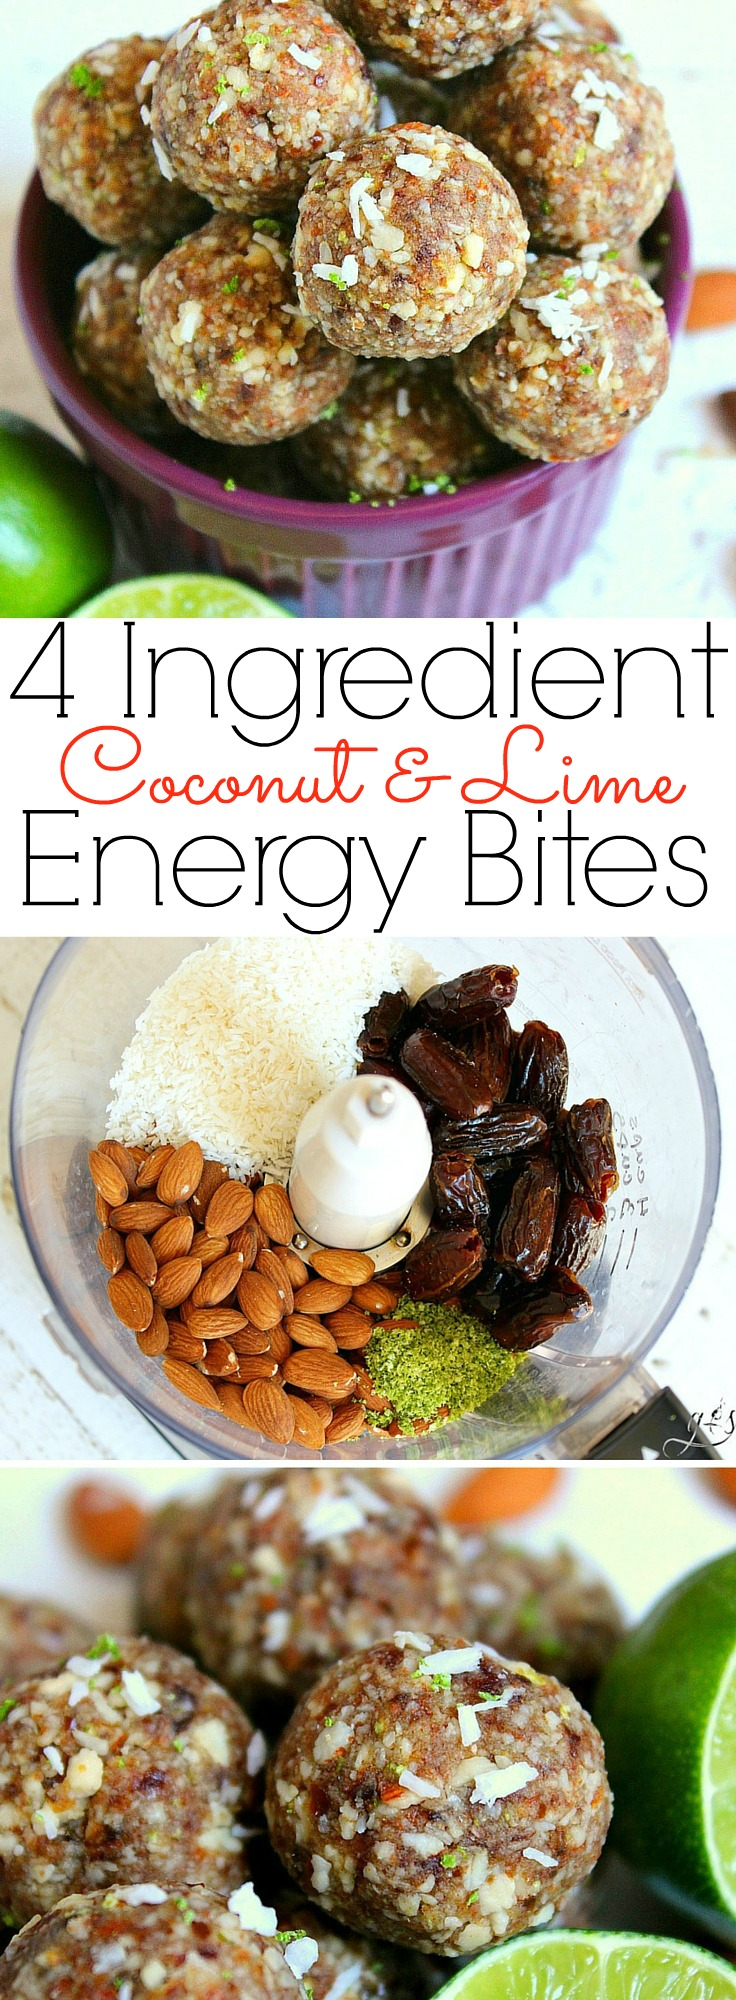 4-Ingredient-Coconut-Lime-Energy-Bites.jpg